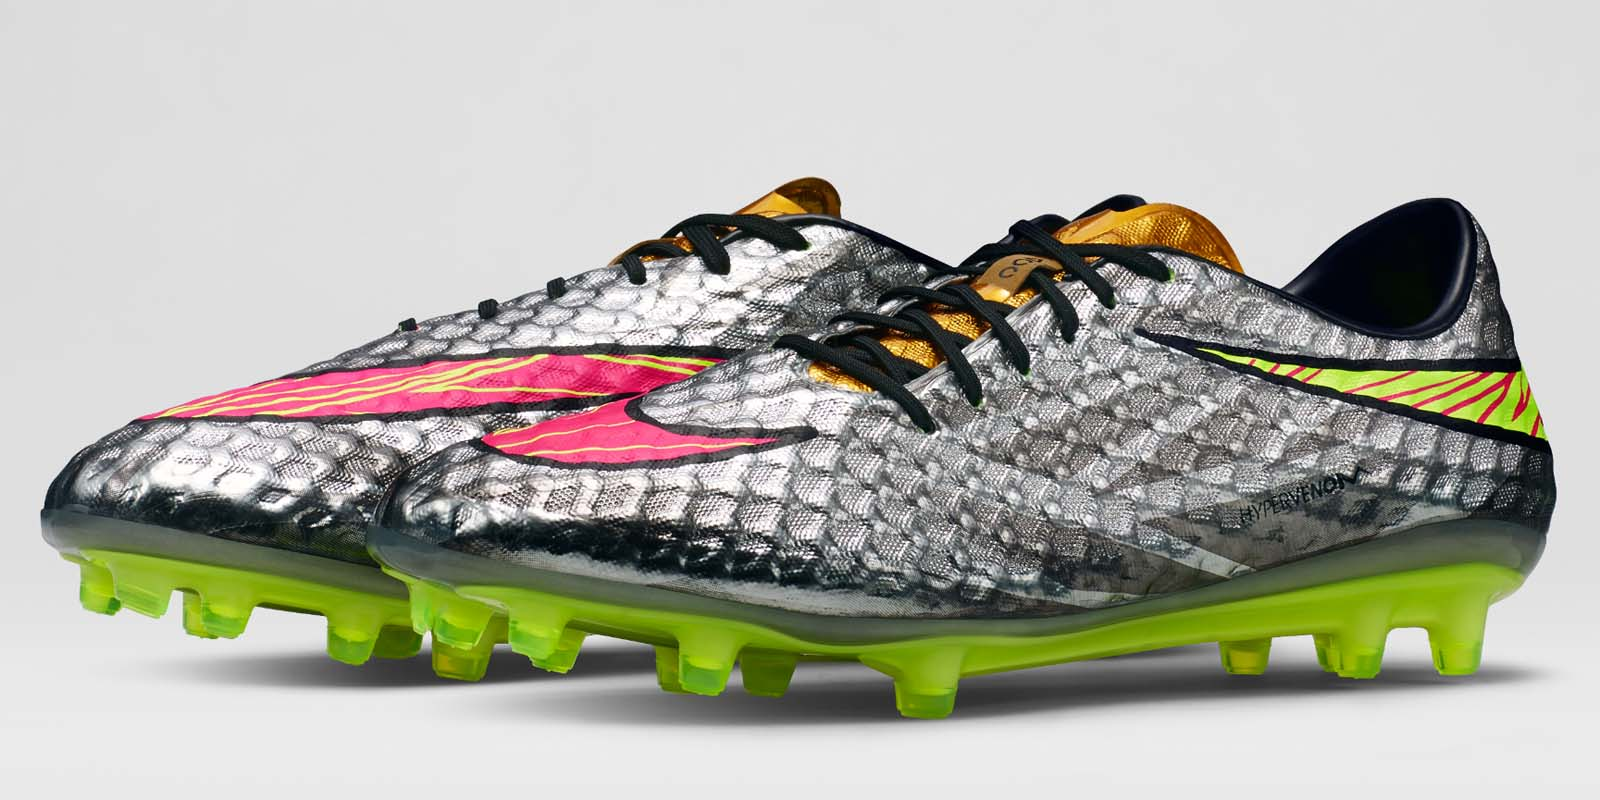 Silver Neymar Nike Hypervenom Boots Released - Liquid Diamond